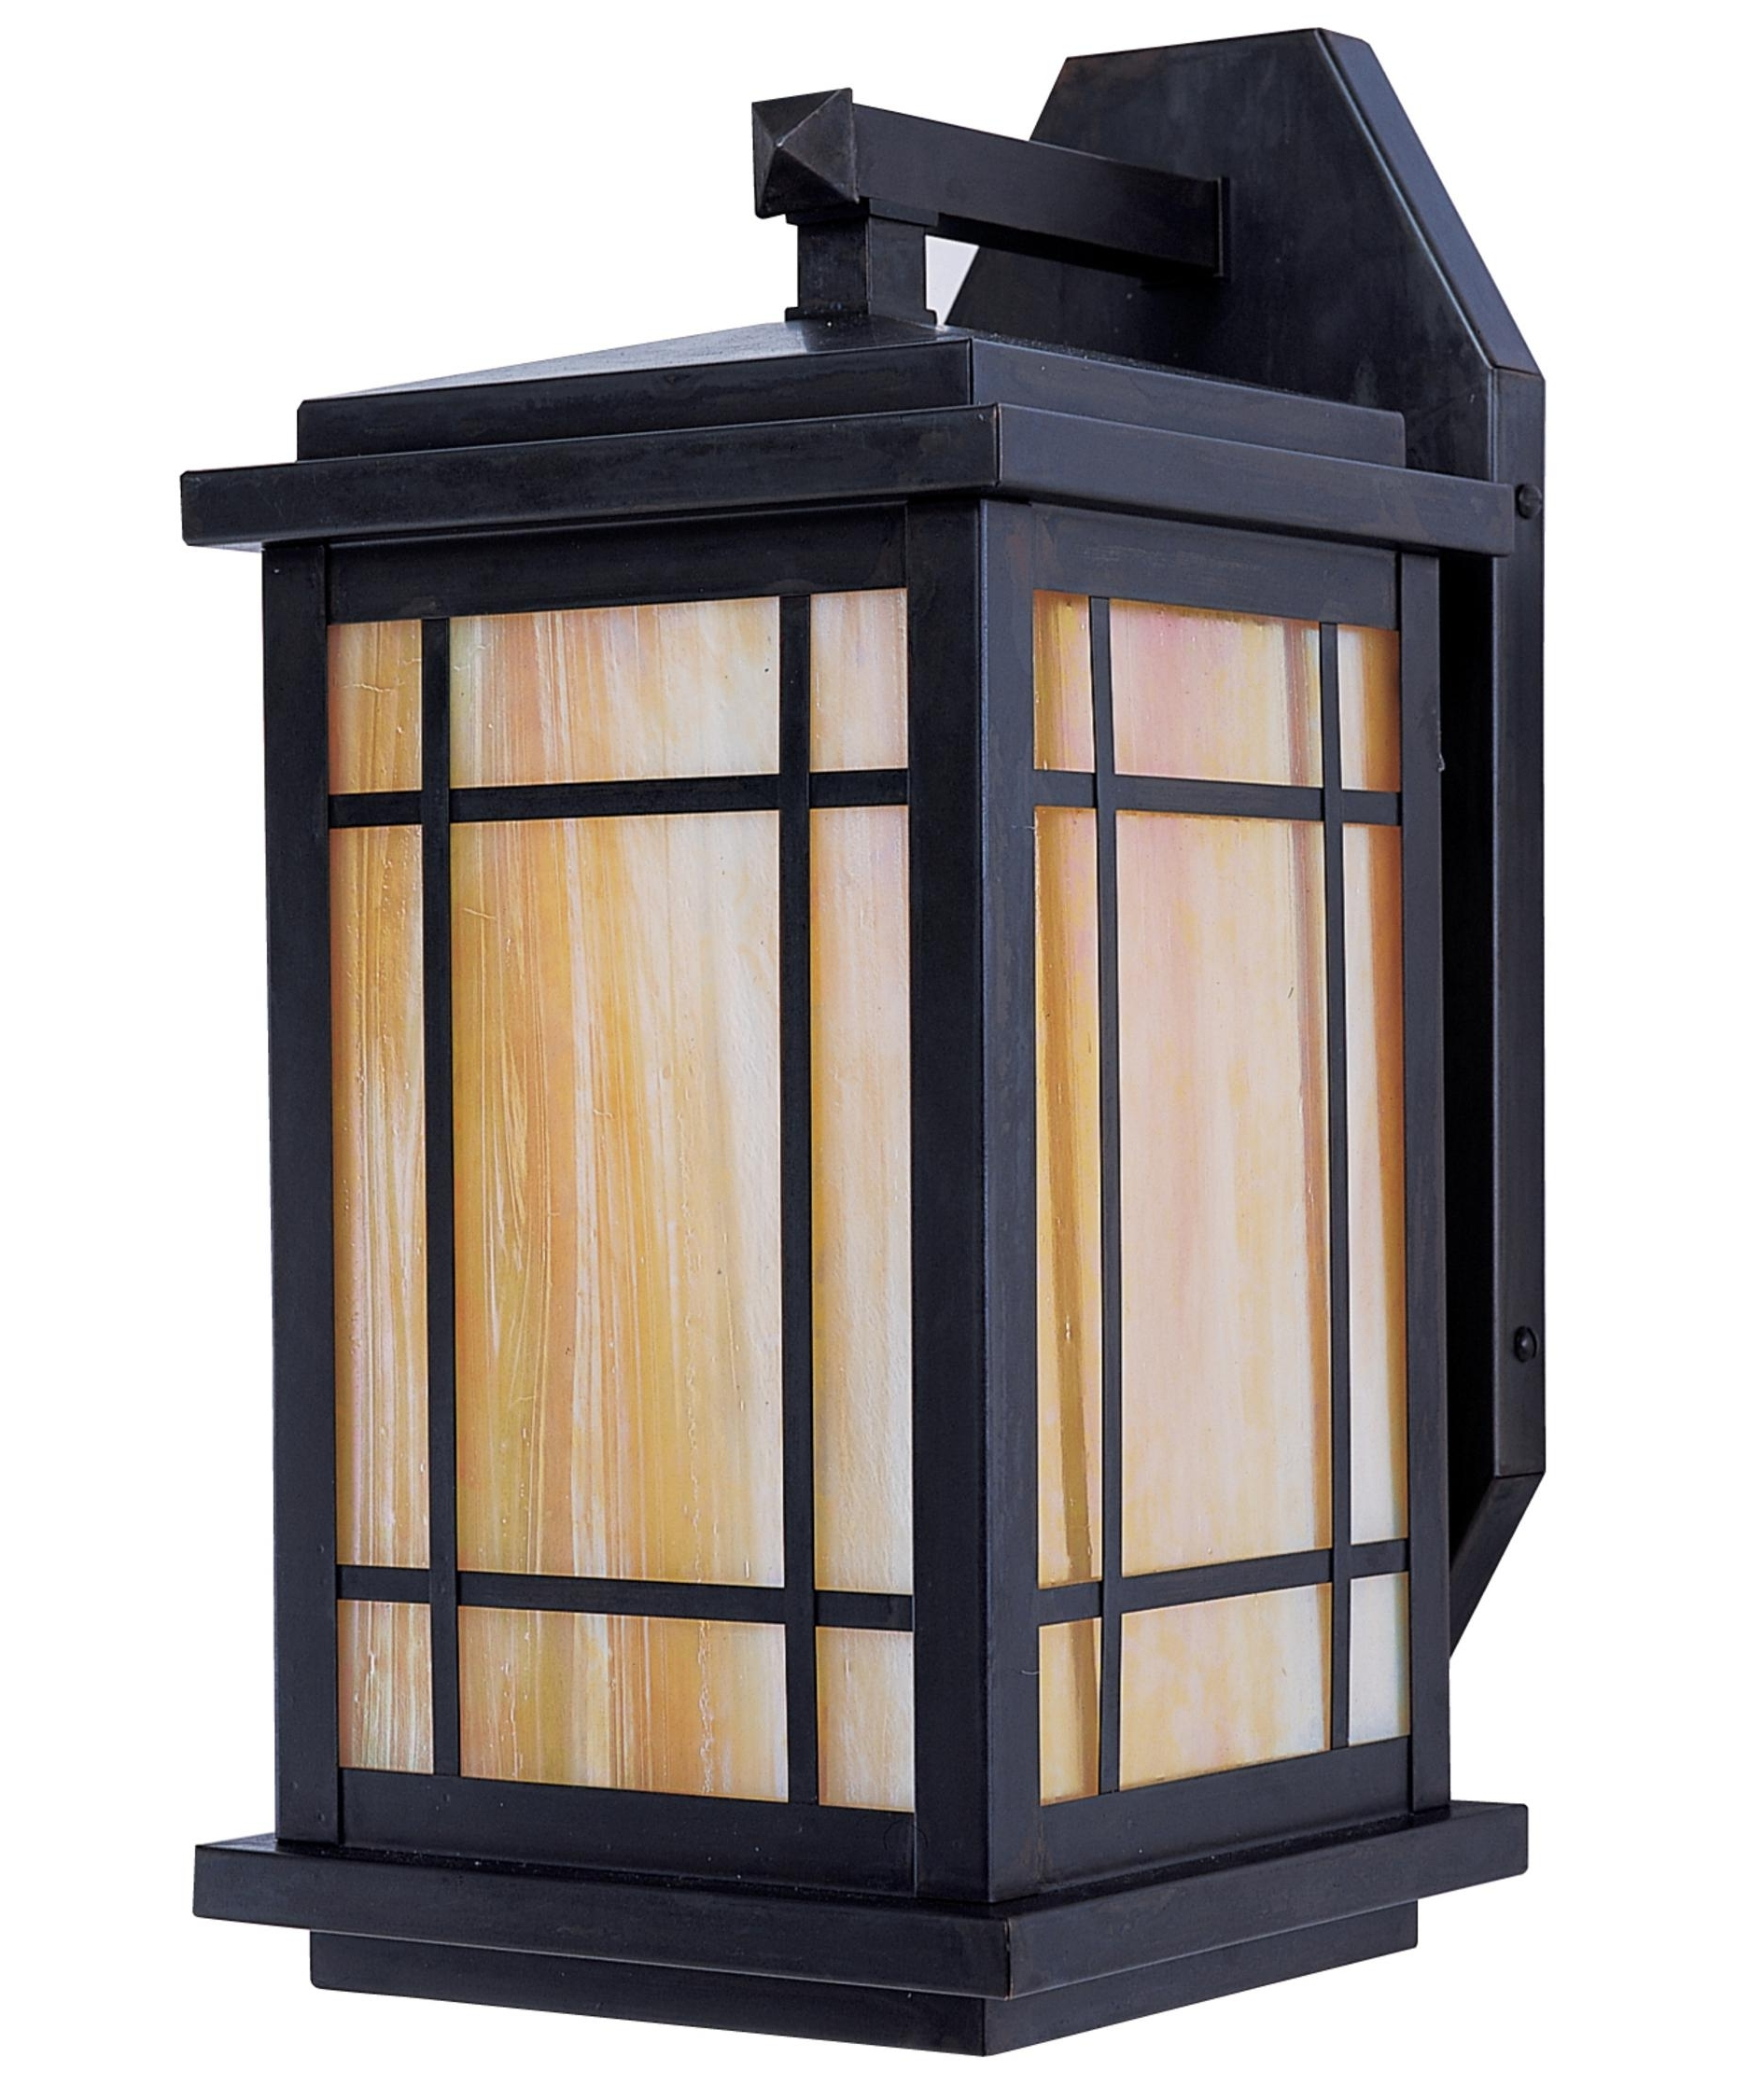 Arroyo Craftsman Avb 8 Avenue 8 Inch Wide 1 Light Outdoor Wall Light Throughout Most Current Verdigris Outdoor Wall Lighting (View 2 of 20)